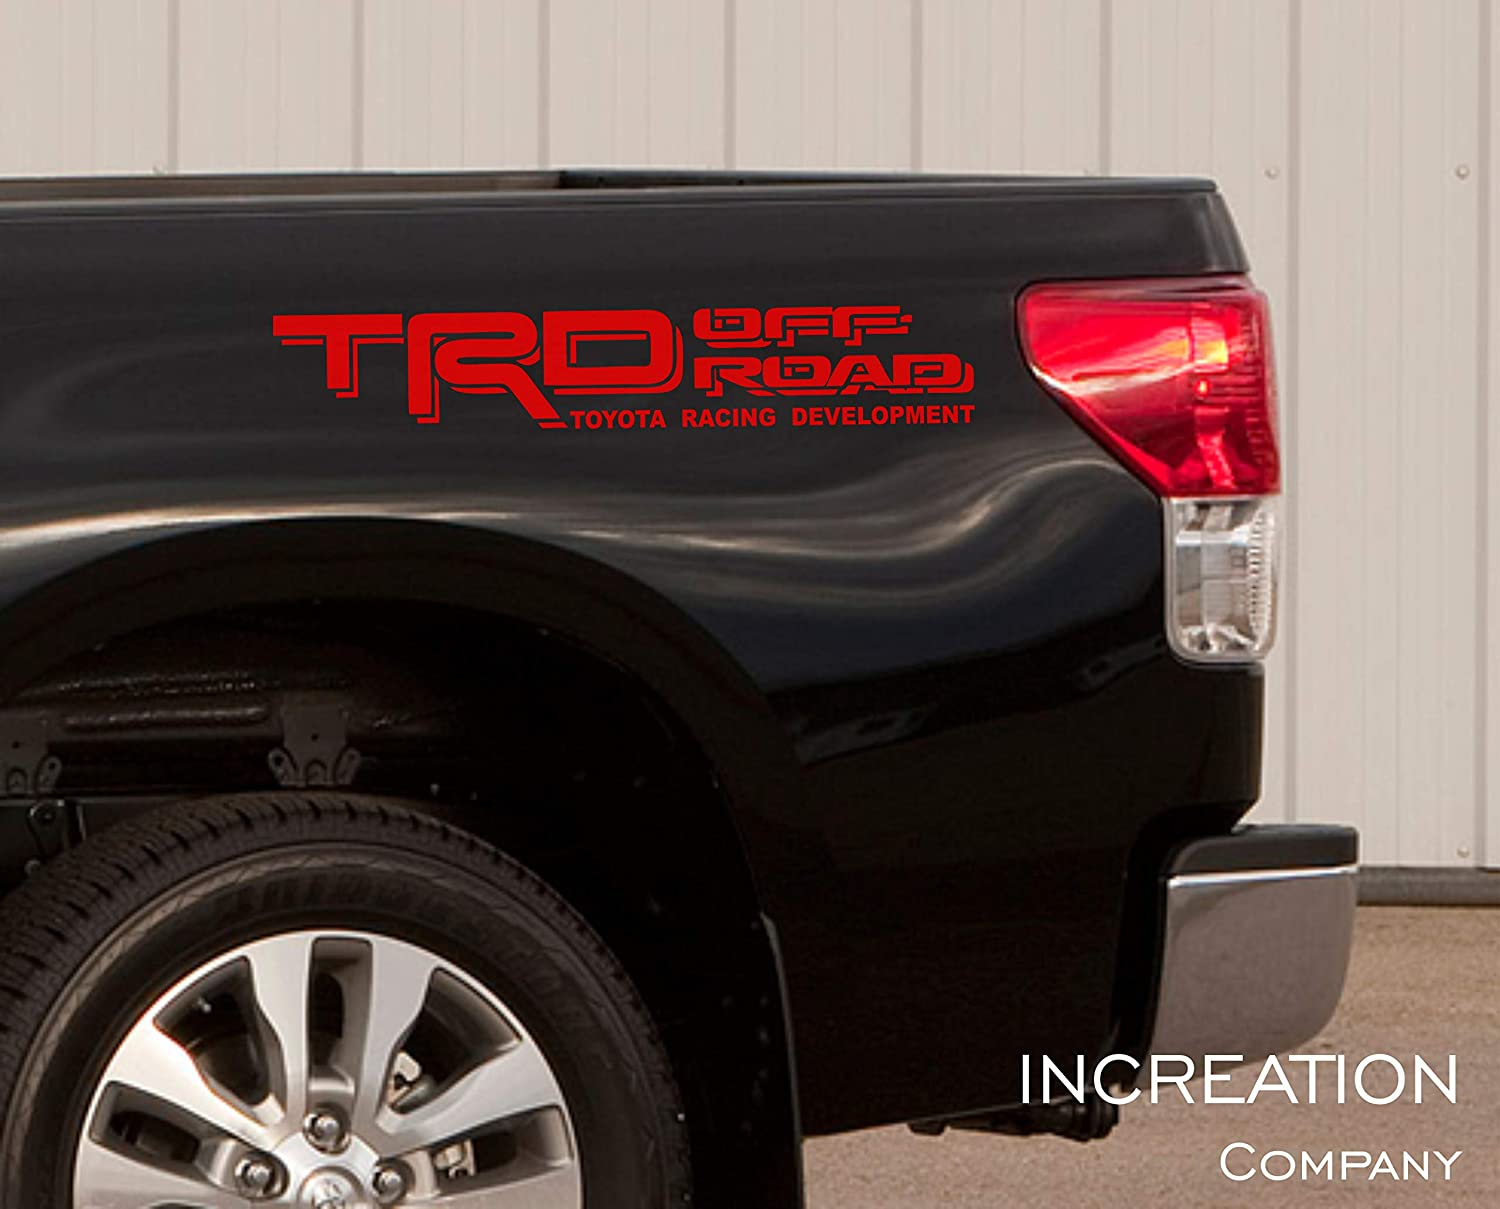 Toyota Tacoma Vinyl Decal Sticker Graphics Kit TRD Sport Side Door x2 ANY COLOR